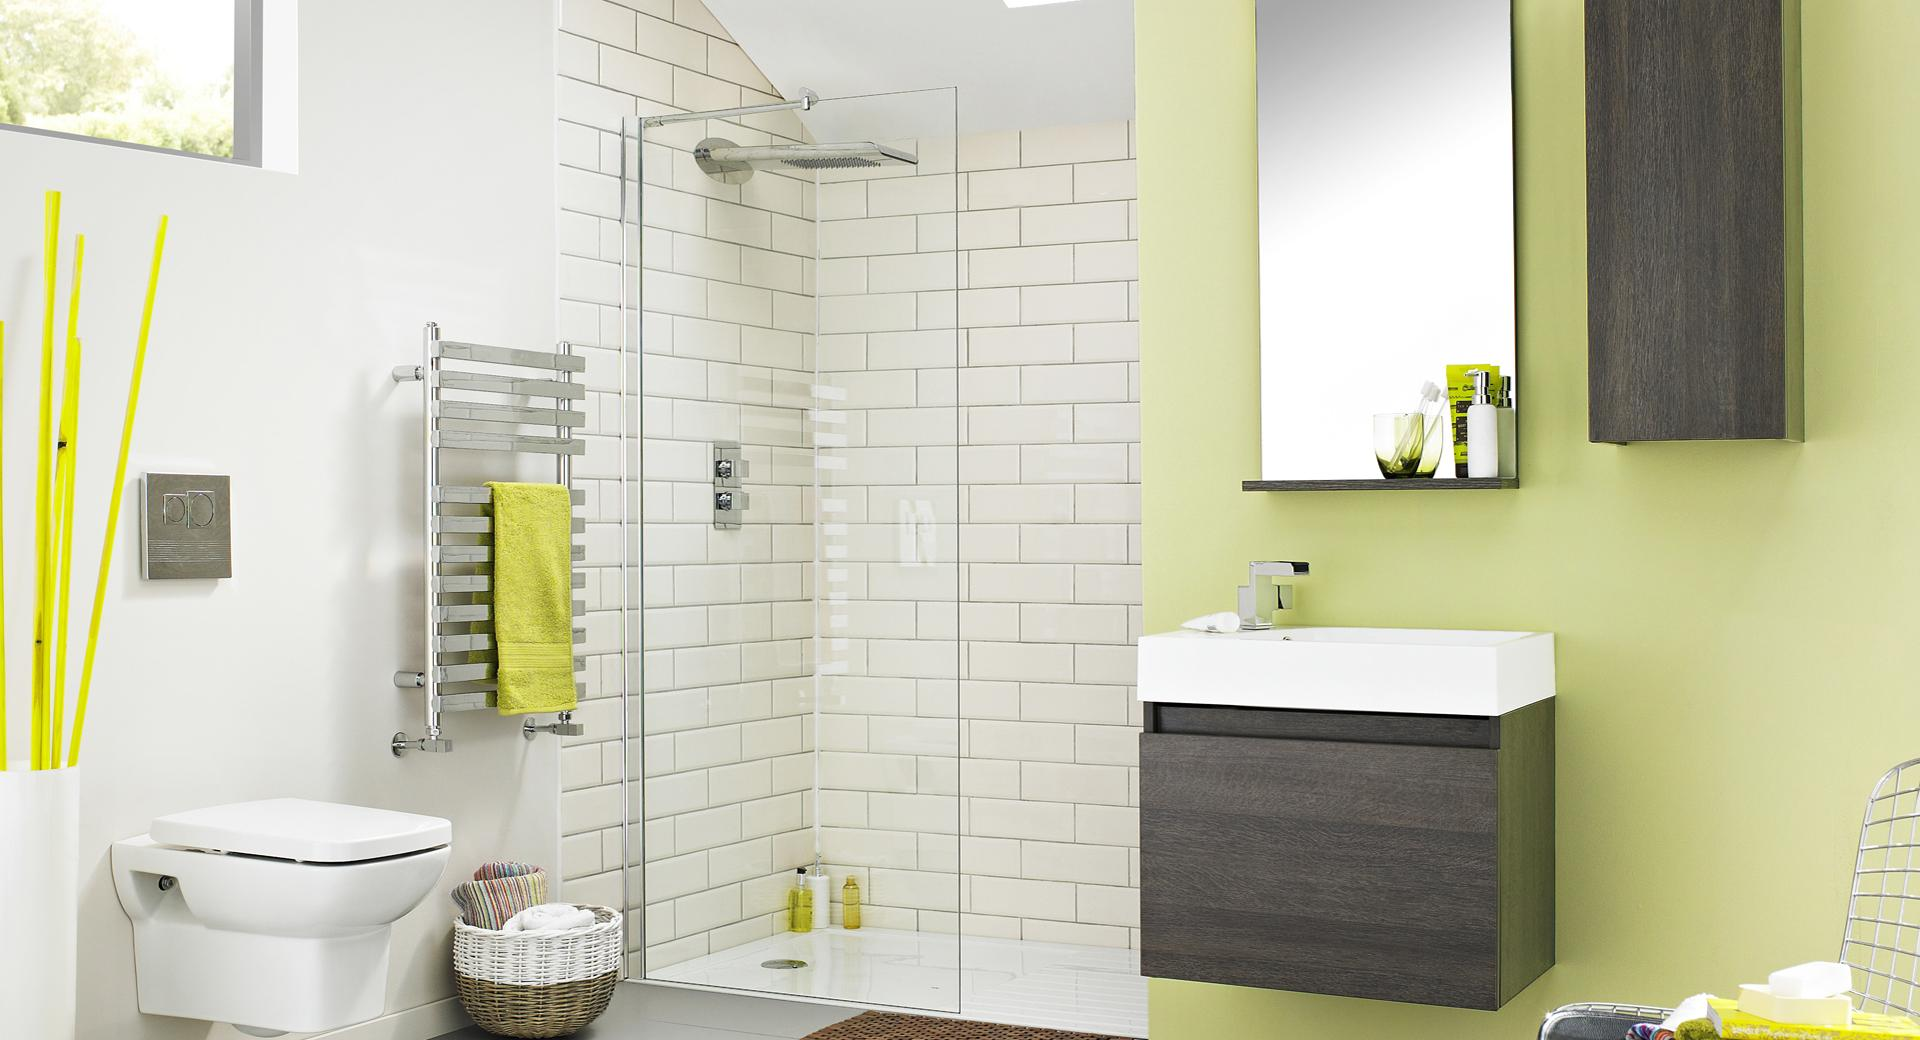 Wholesale Domestic Bathroom Blog - A Complete Guide to Contemporary ...